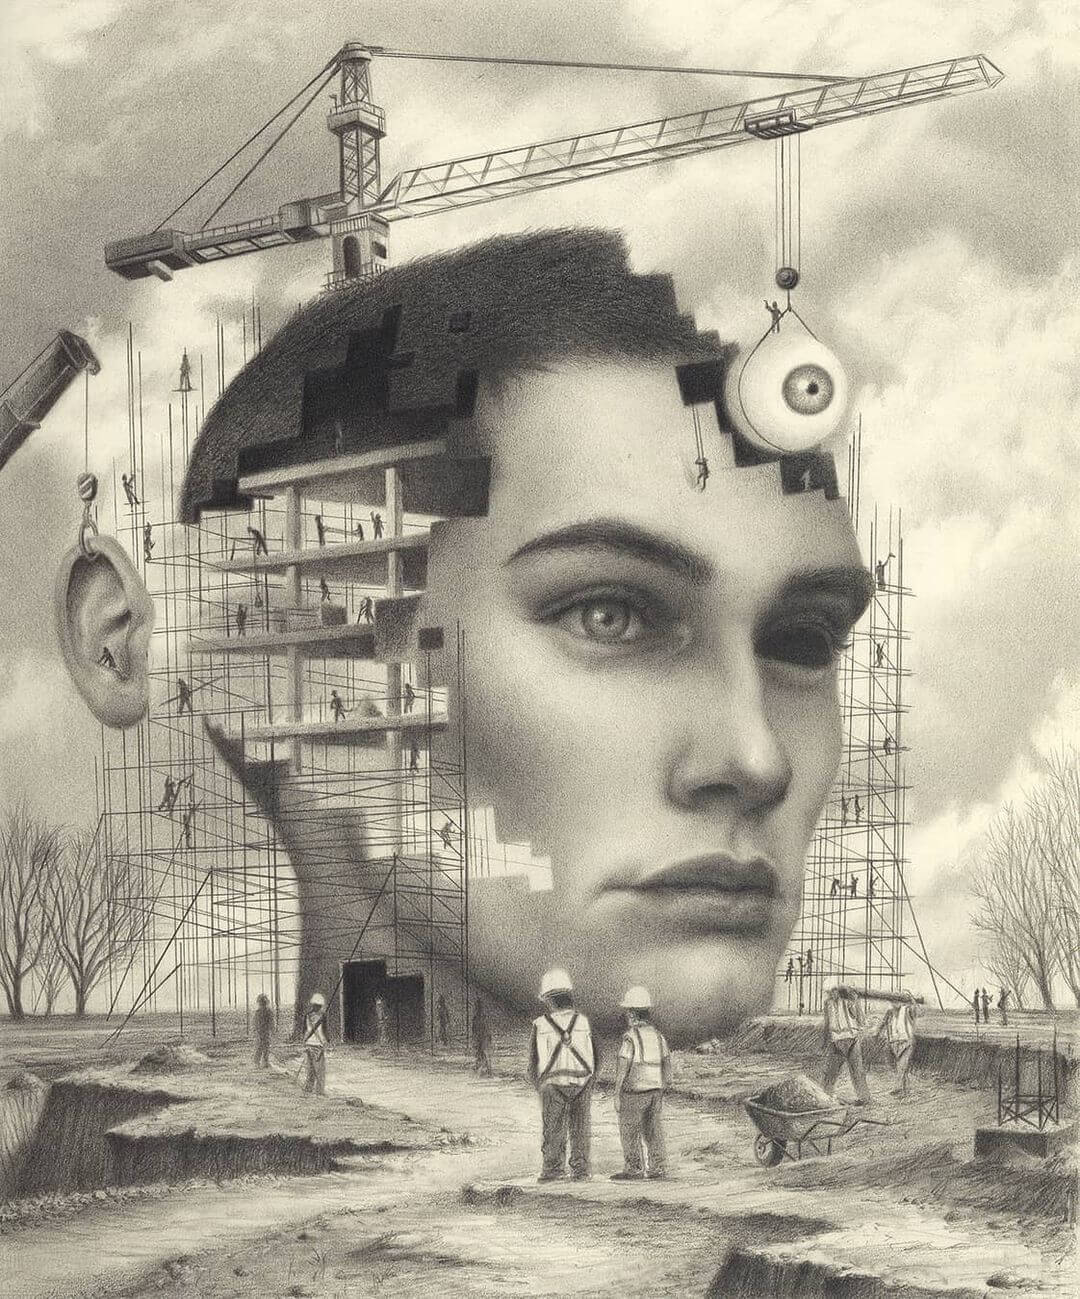 Graphite drawing of a woman being built by Carlos Fernández the Penrider